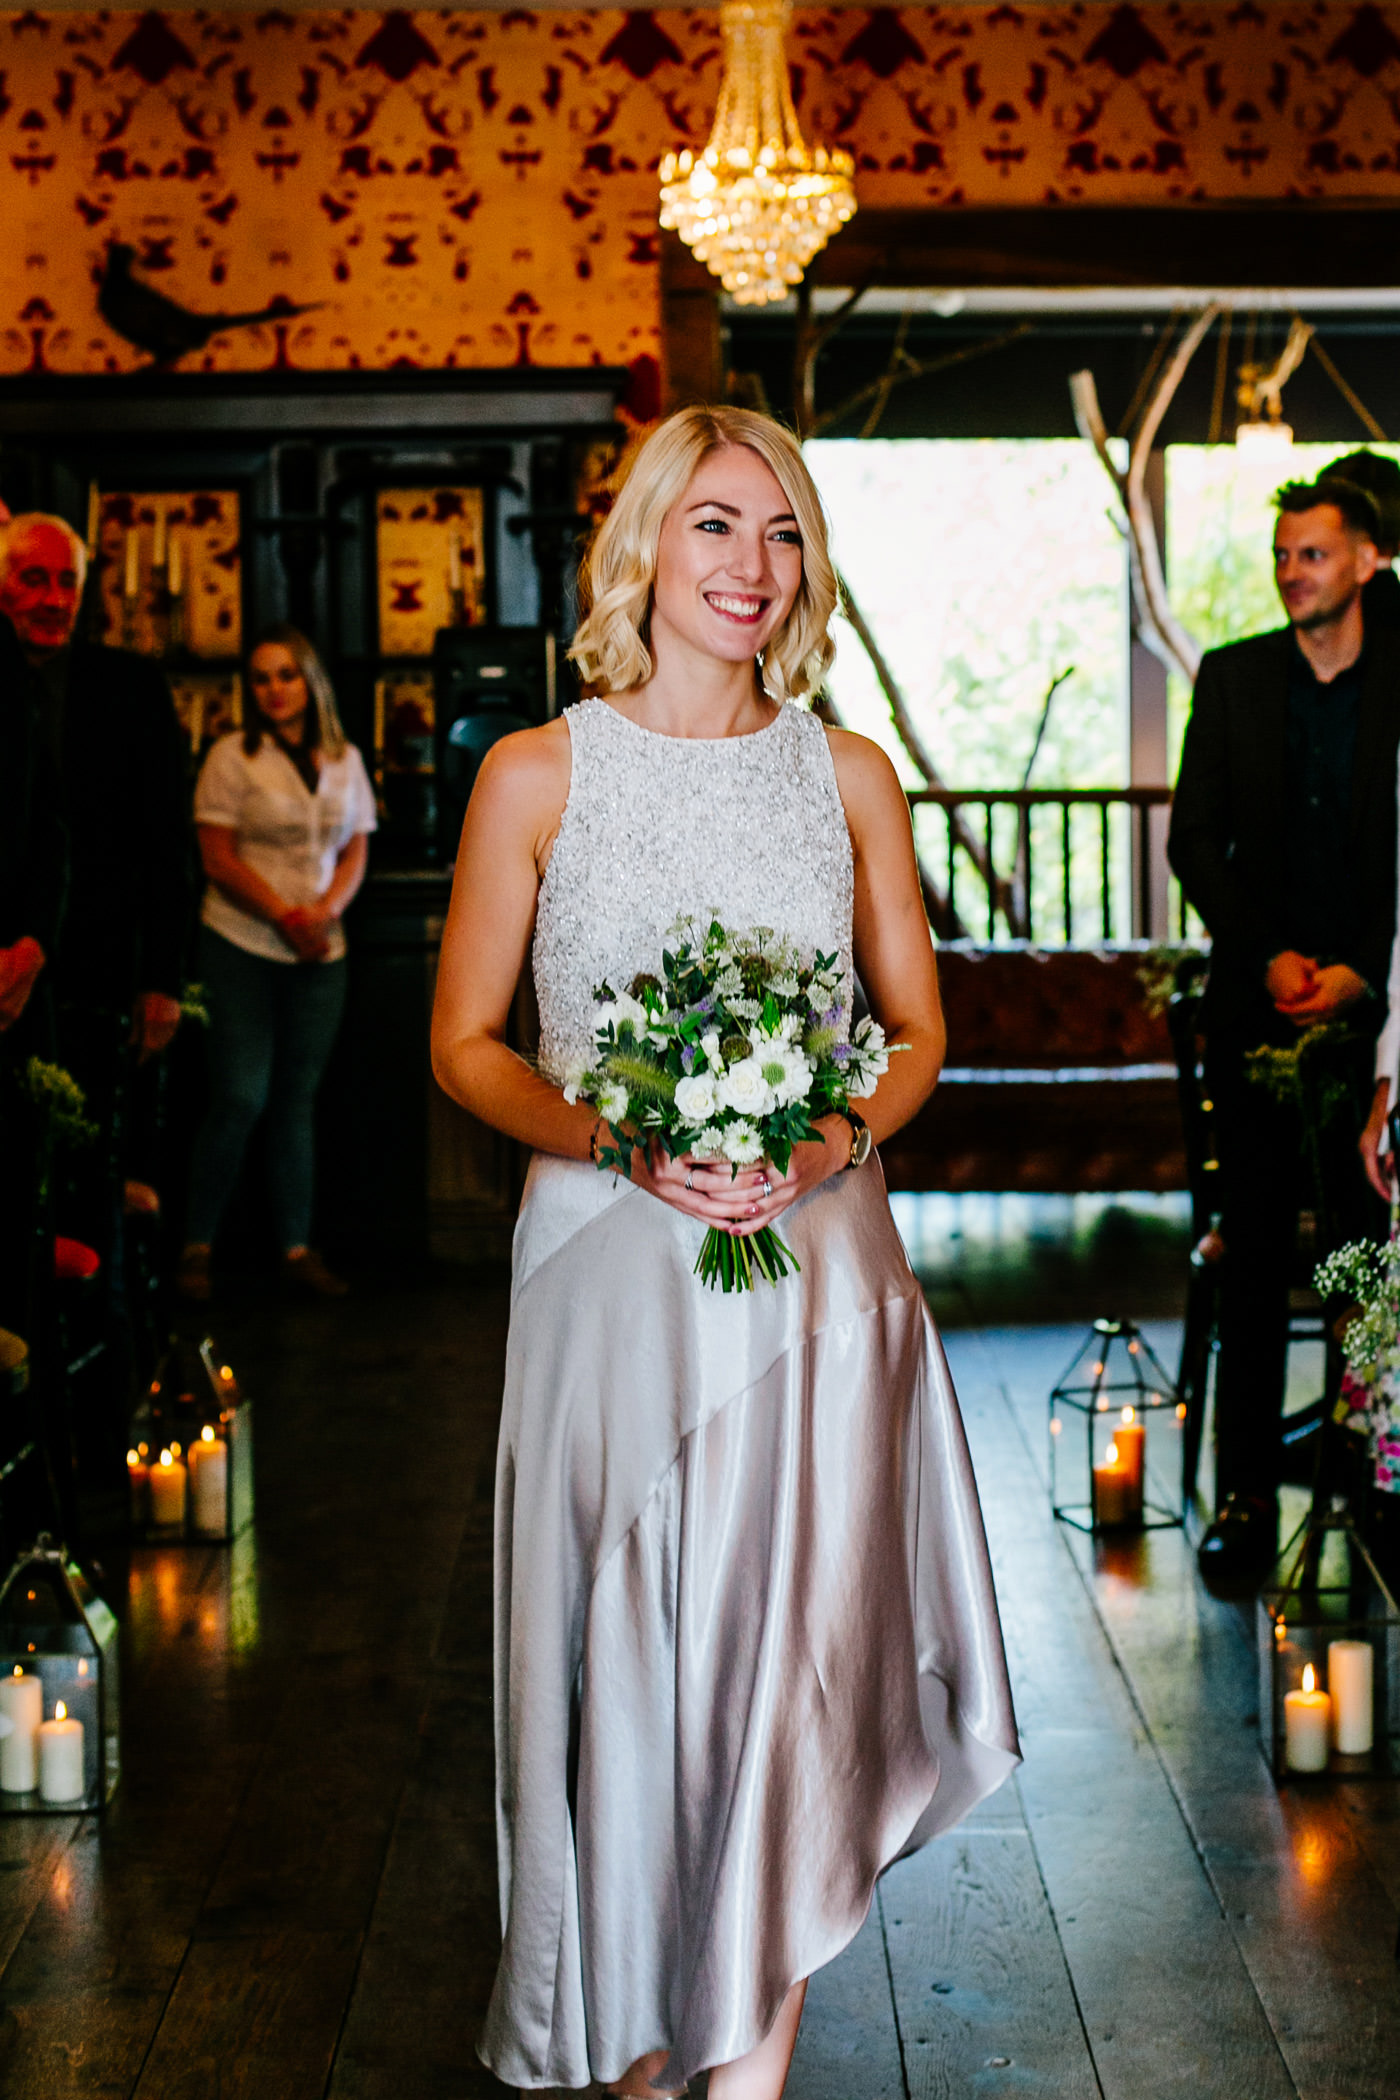 The-bell-in-Ticehurst-pub-kent-wedding-photographer-London-Epic-Love-Story-046